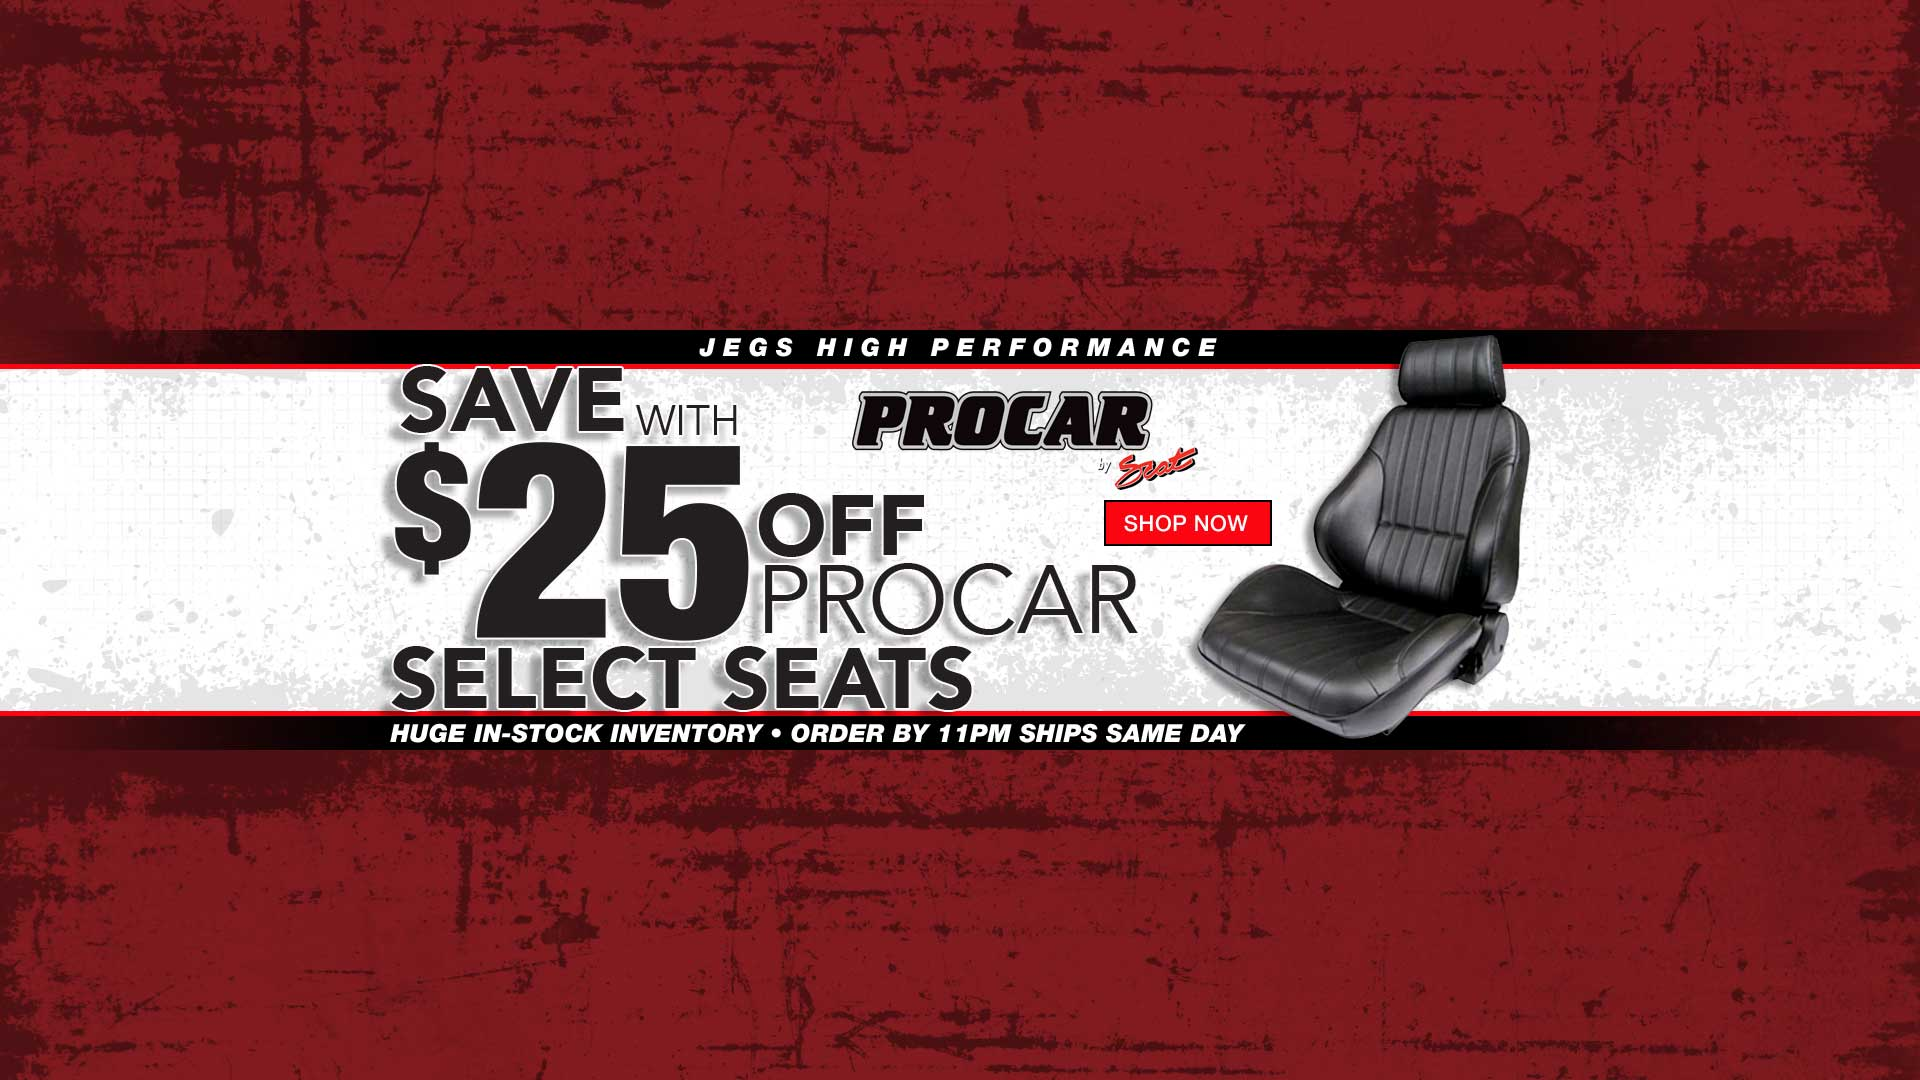 Save $25 off Select Procar Seats